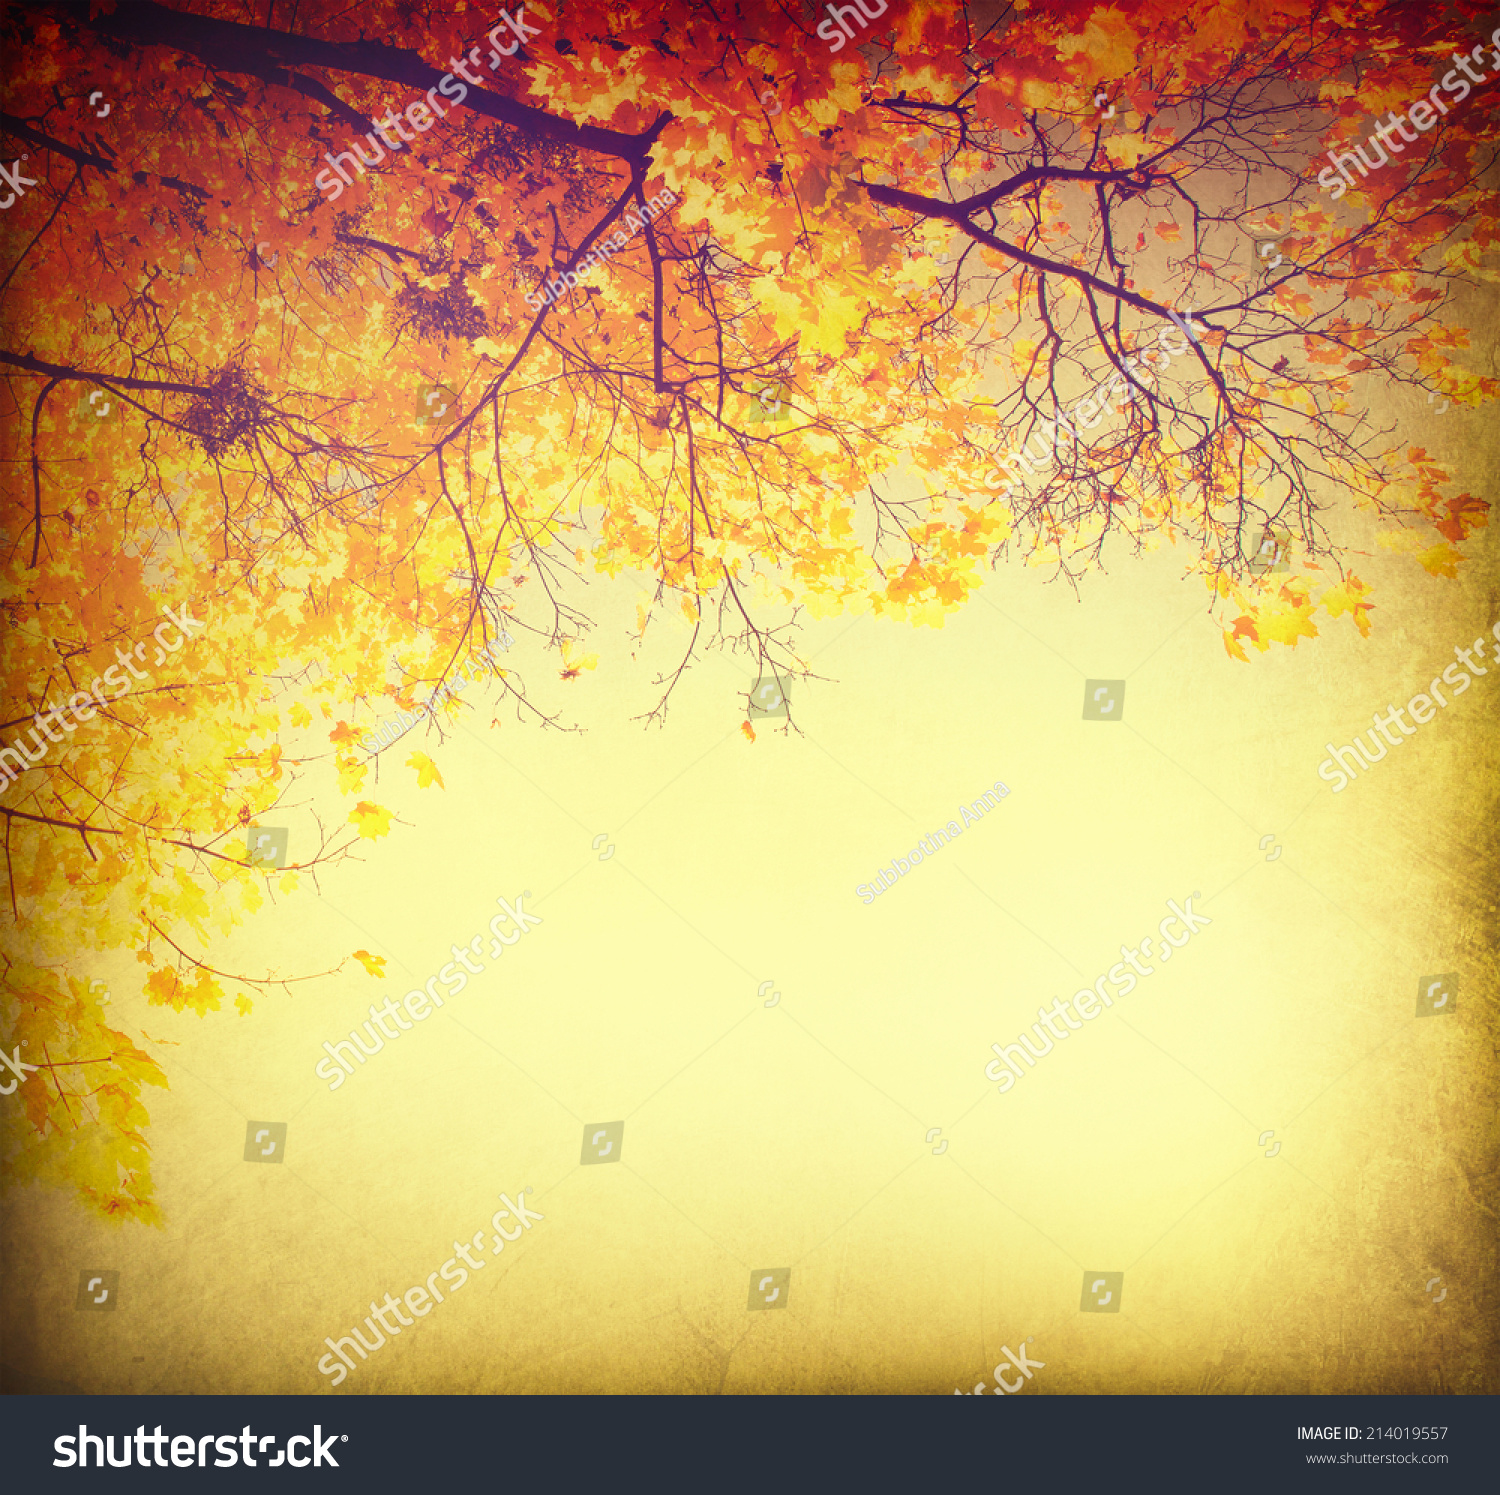 Autumn Background Fall Abstract Vintage Autumnal Stock